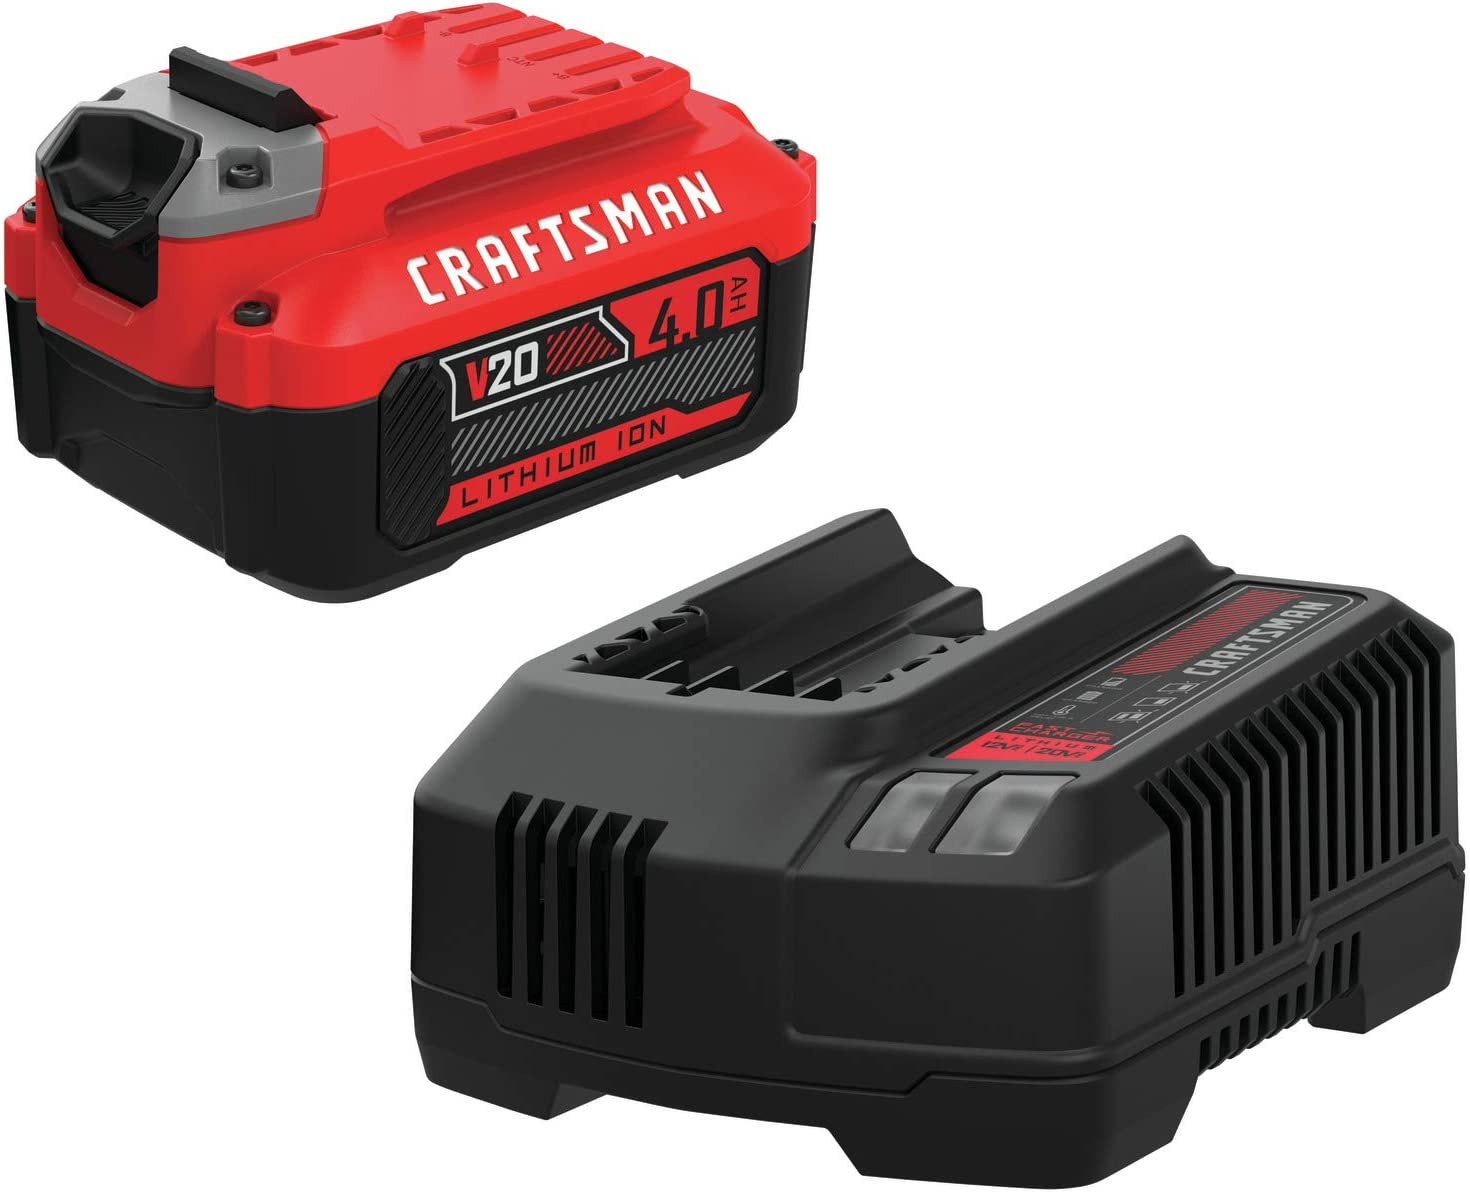 CRAFTSMAN V20 Craftsman Ranking TOP12 Battery Power Charger Include Memphis Mall Tool Kit